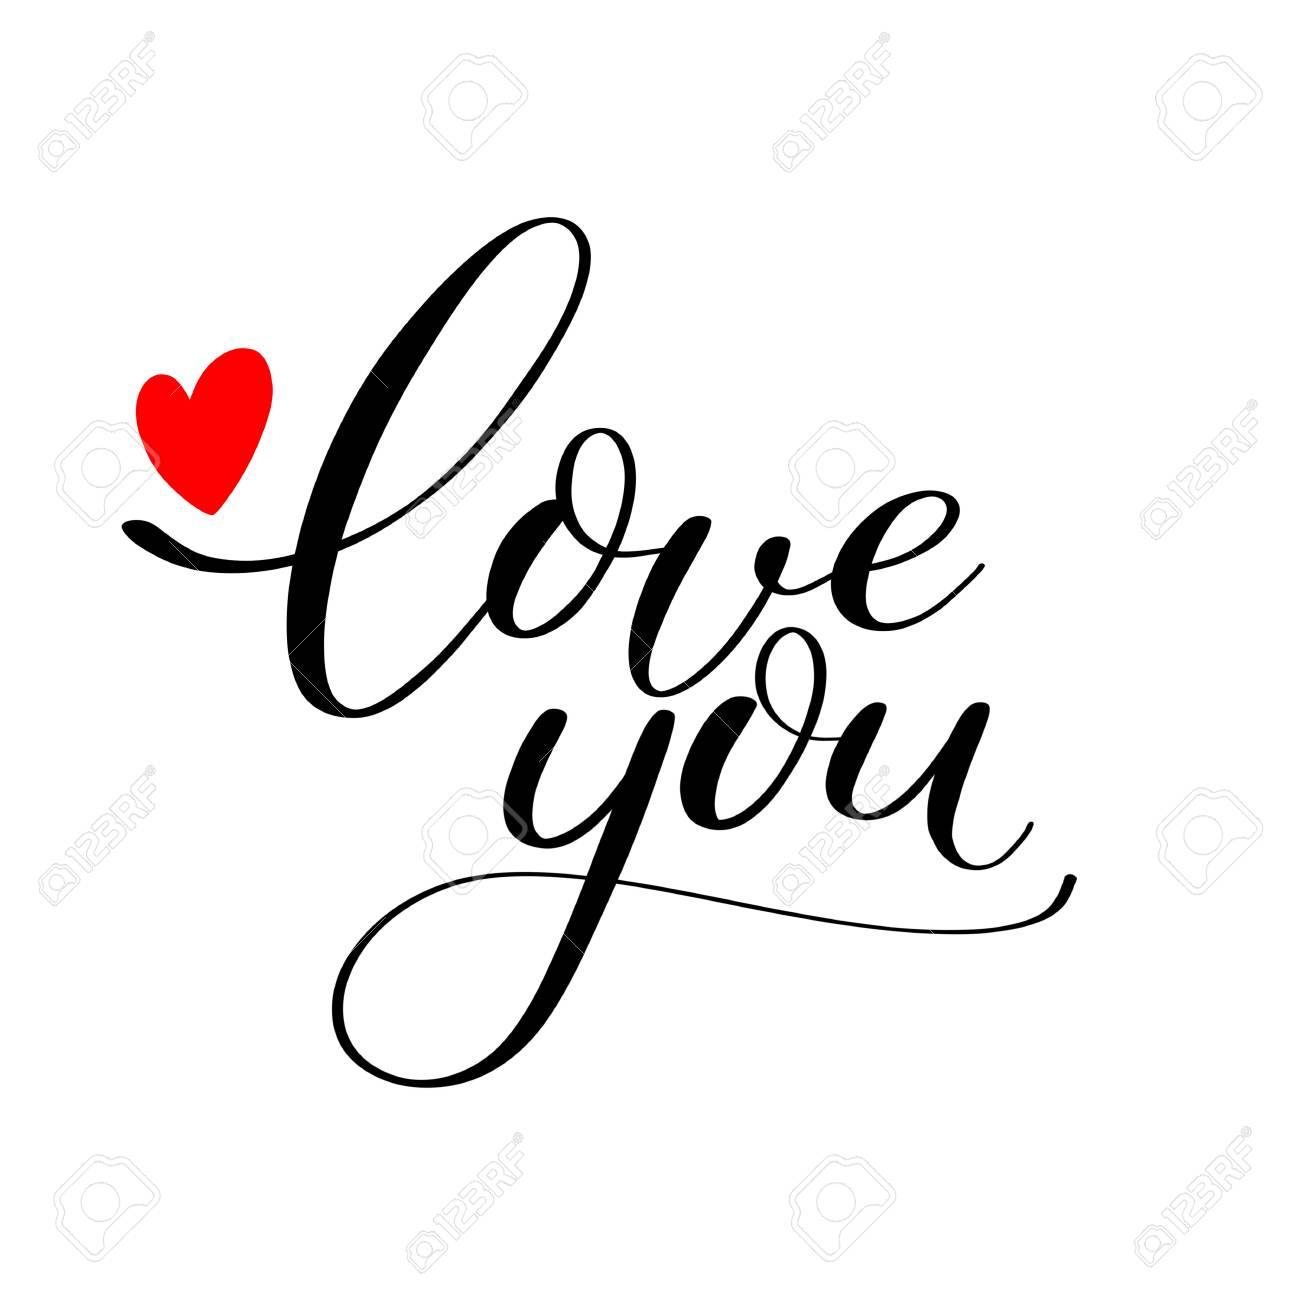 Simple Love you text with red heart, Calligraphic love lettering - 93872585